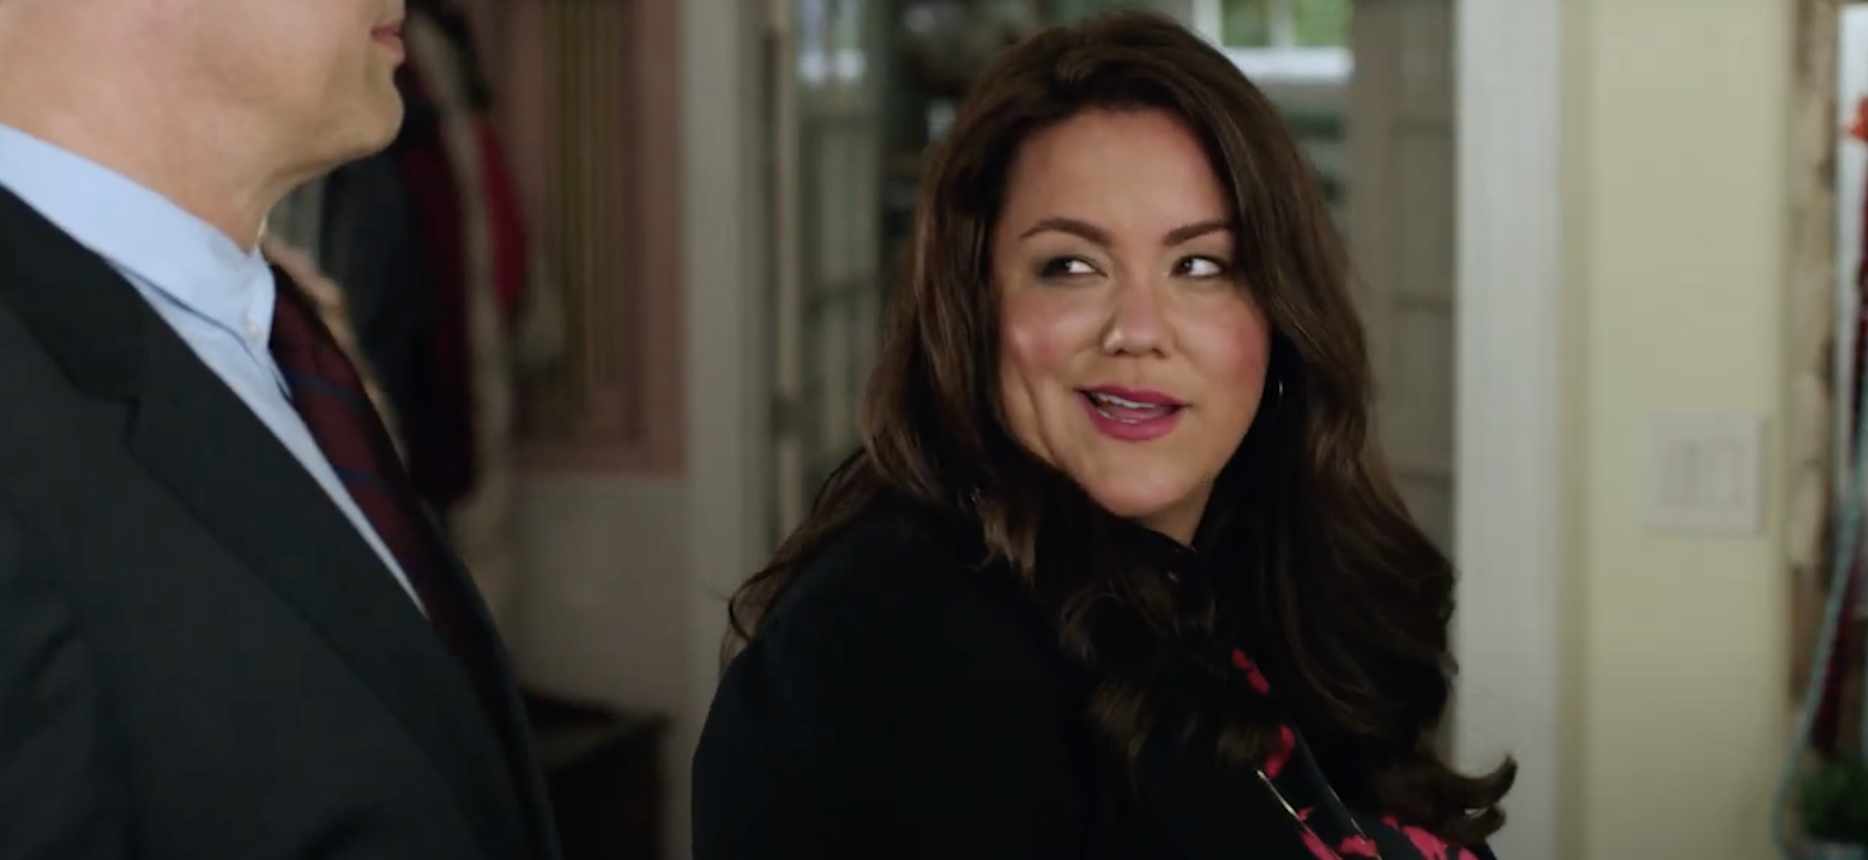 ABC Series 'American Housewife' Season 5 Trailer Released